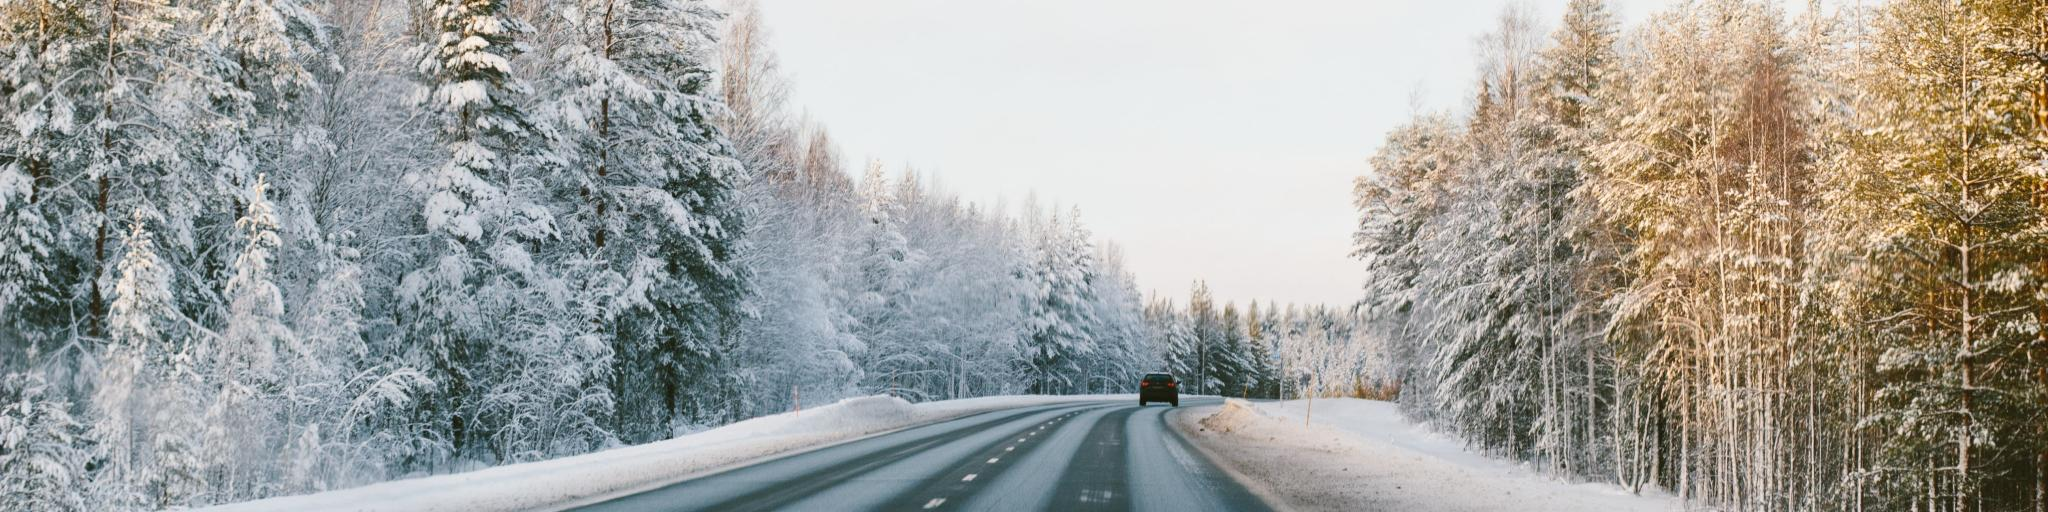 A car driving down the right side of a road surrounded by snowy trees